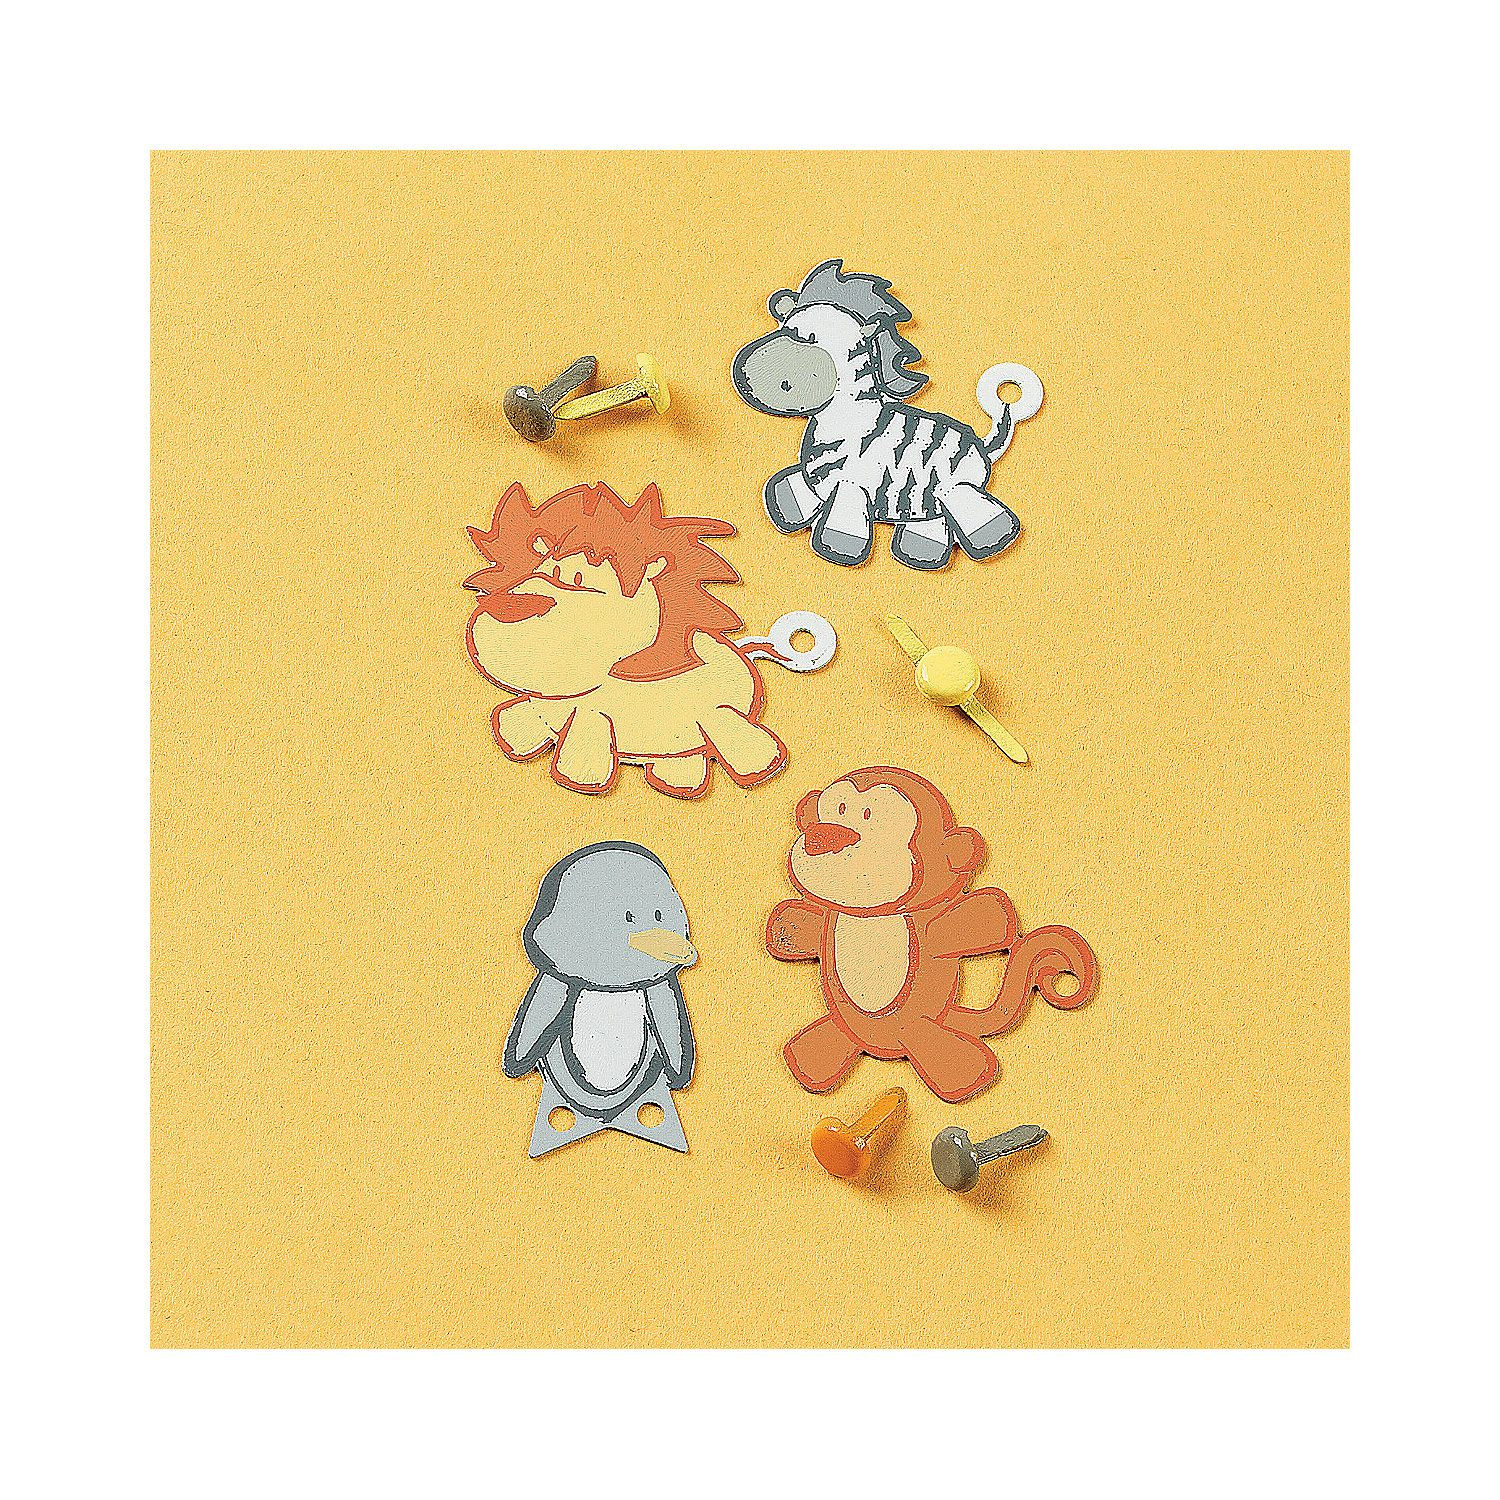 Zoo animal scrapbook ideas - Embellish Scrapbook Pages Of Memories Of Your Trip To The Zoo With These Adorable Metal Zoo Animal Flat Brads Includes 4 Each Of Zebra